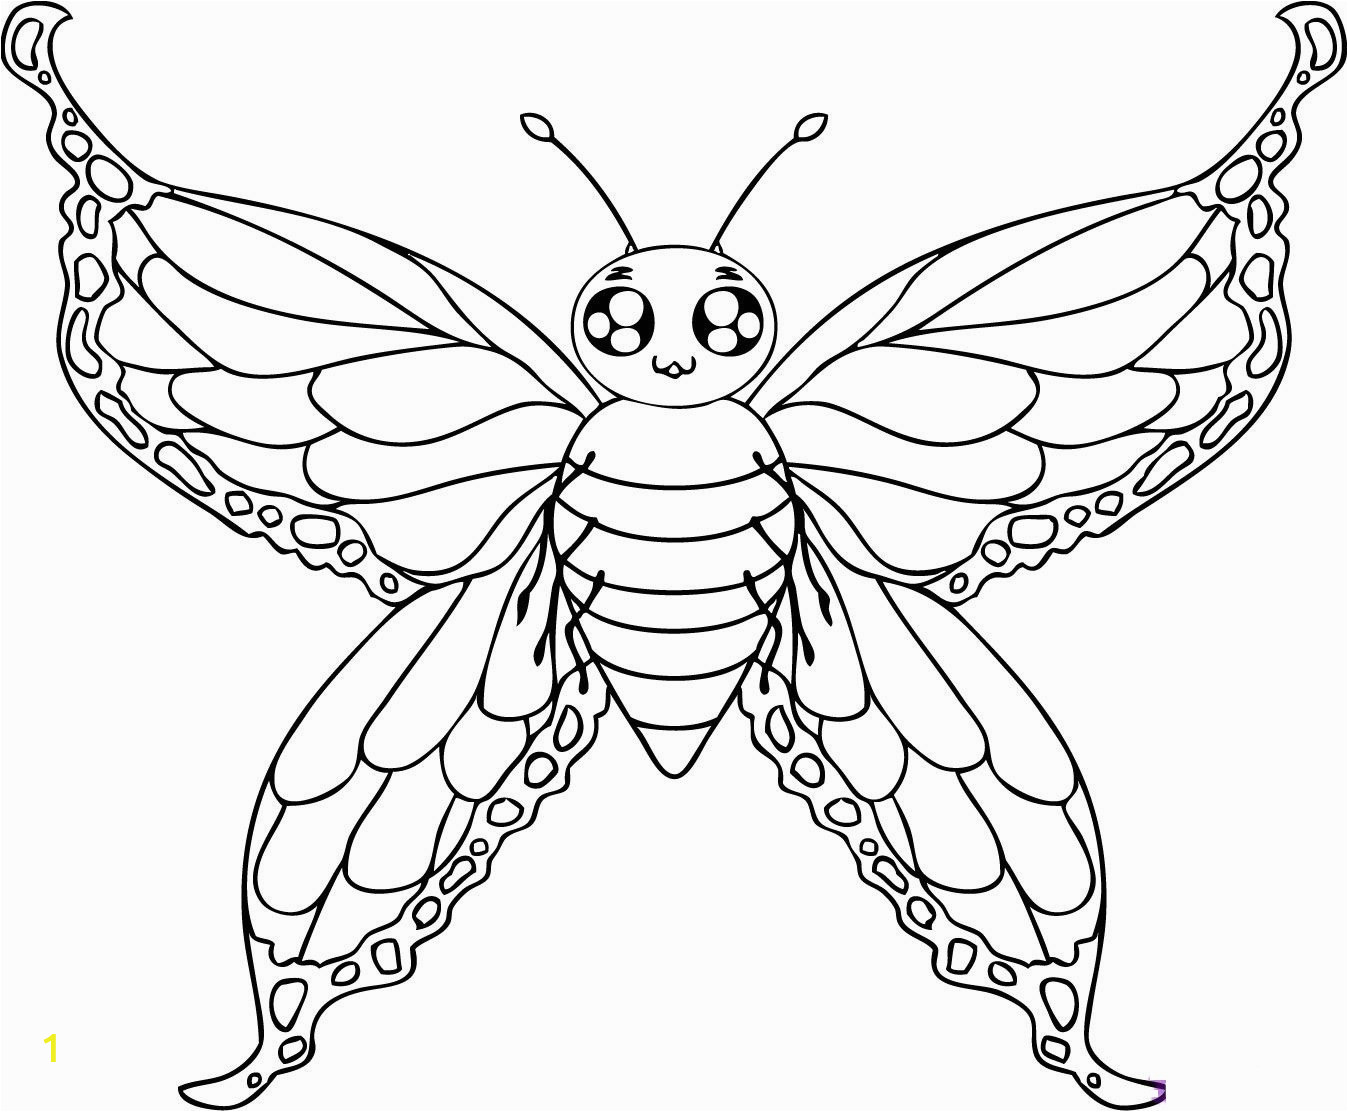 free printablely coloring pages for kids book caterpillar dragonfly pictures sheets adults